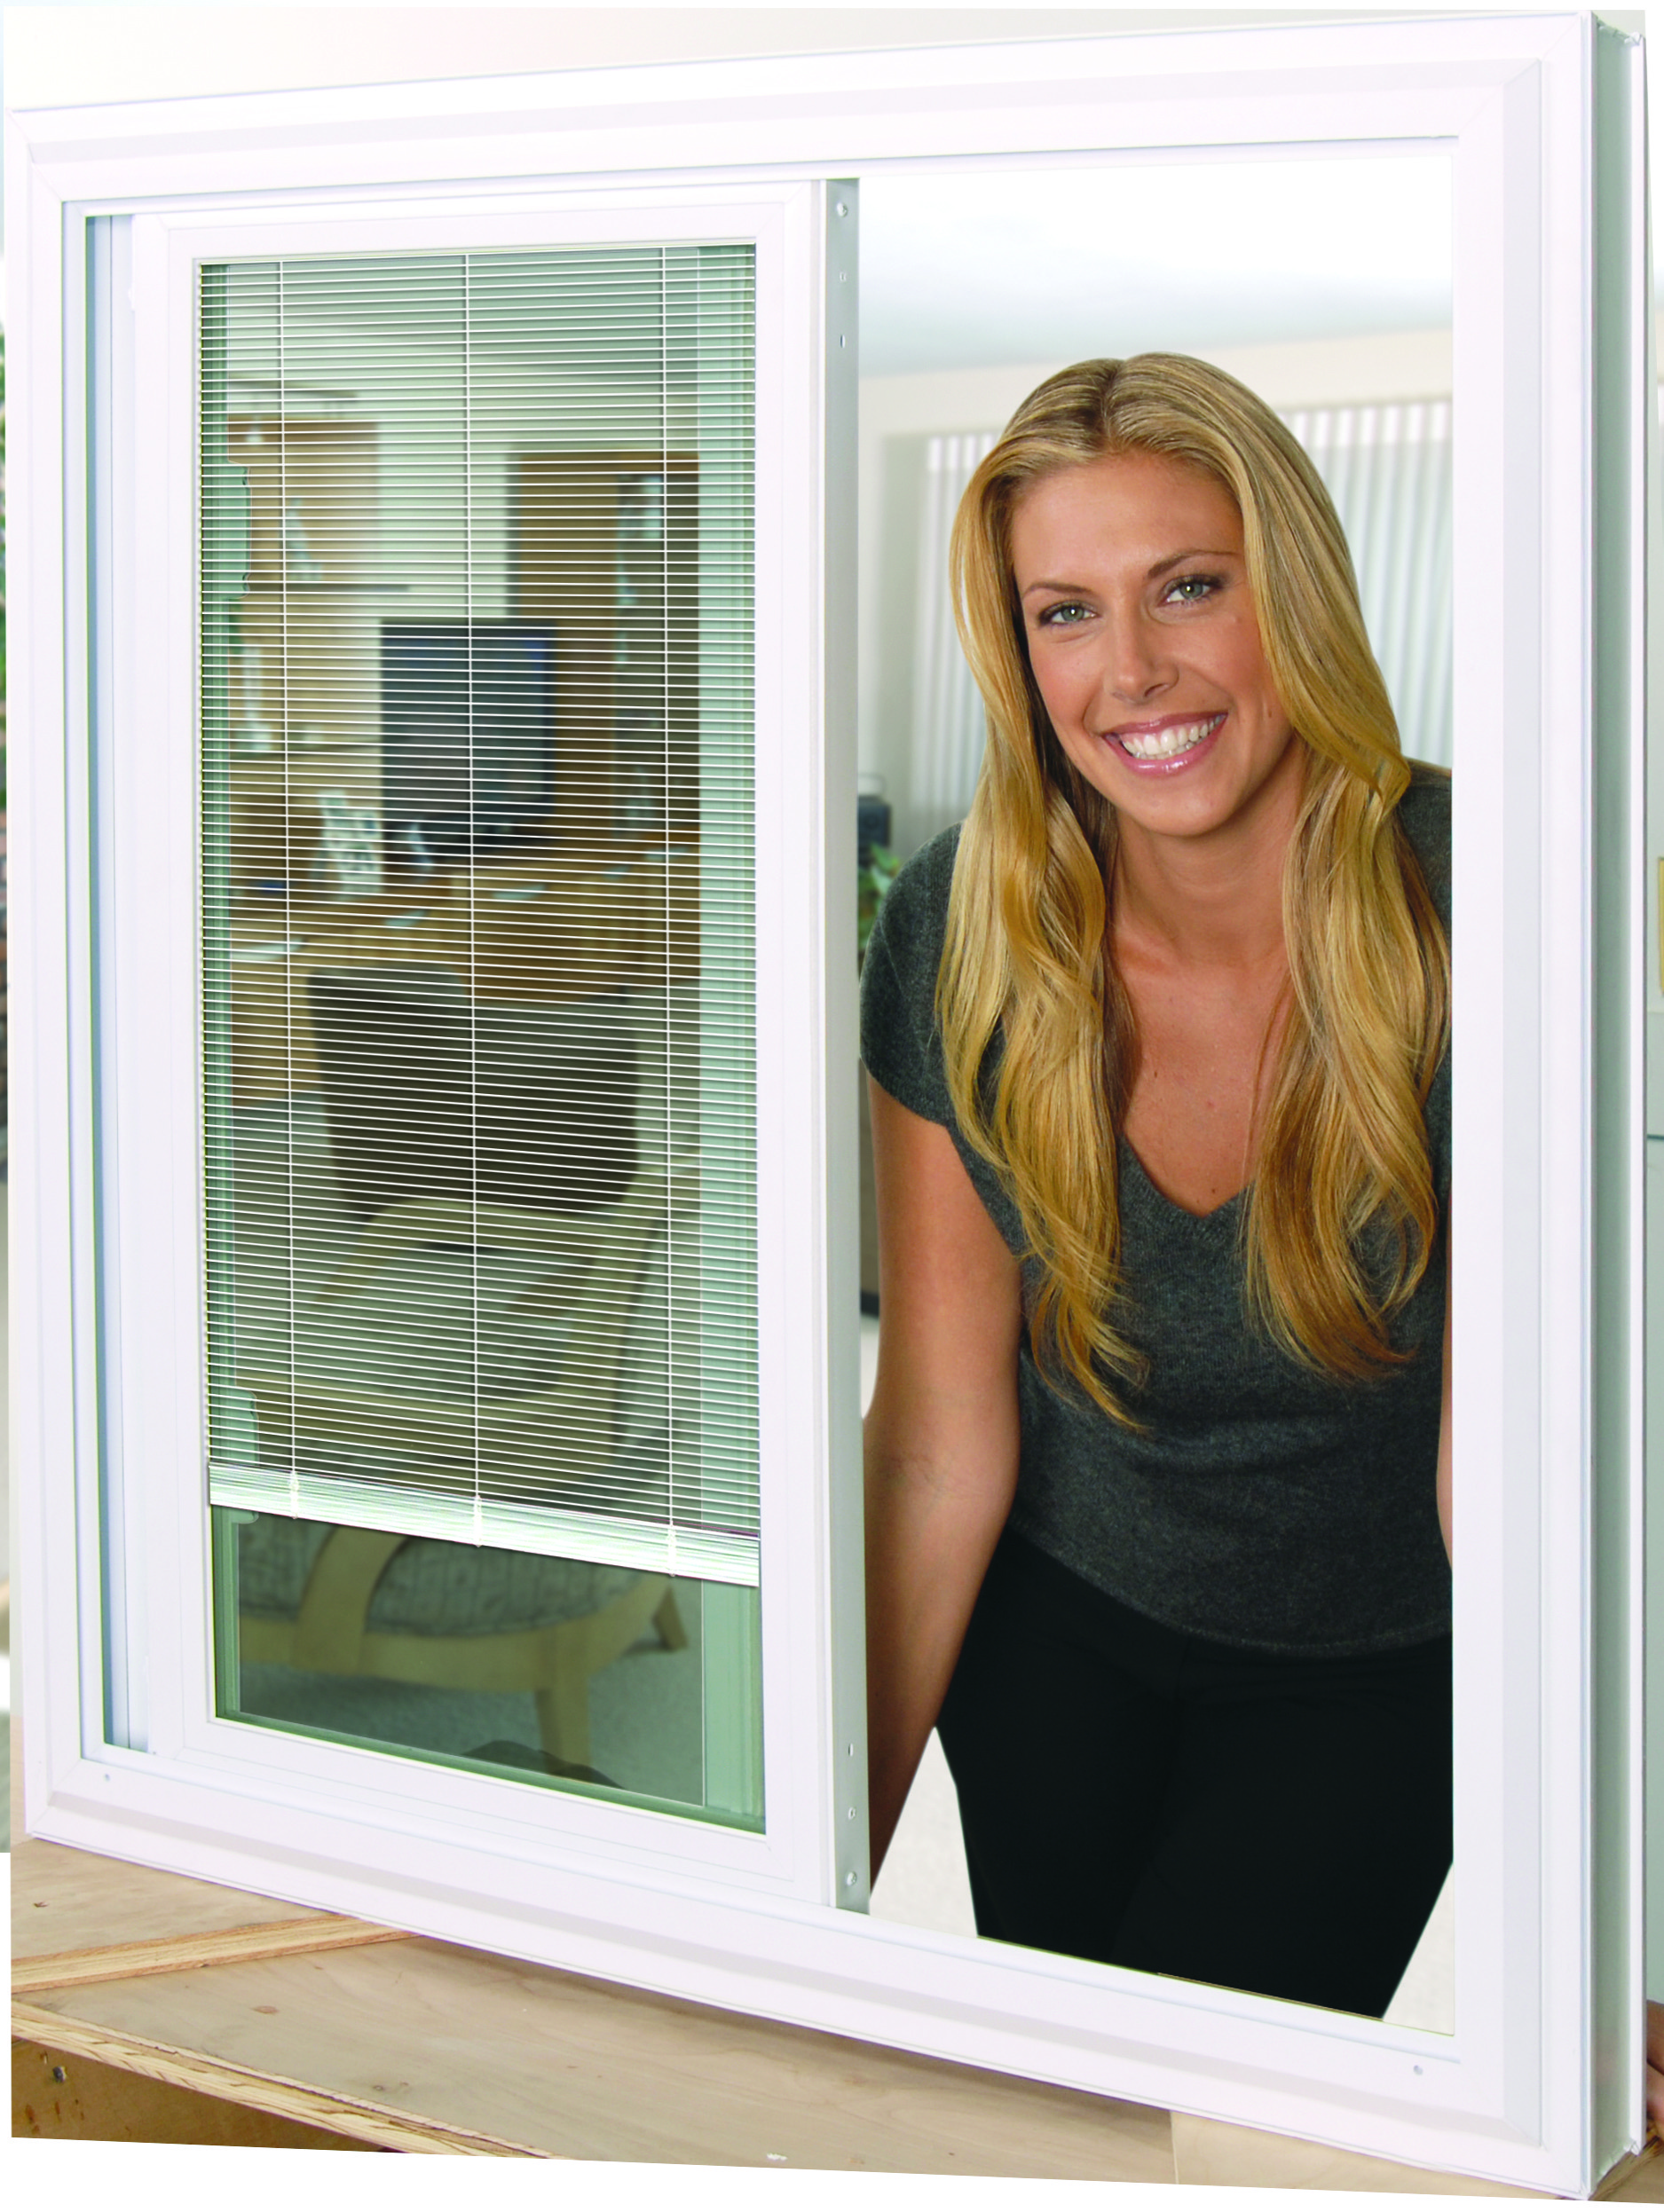 A woman leaning through an opened sliding glass window